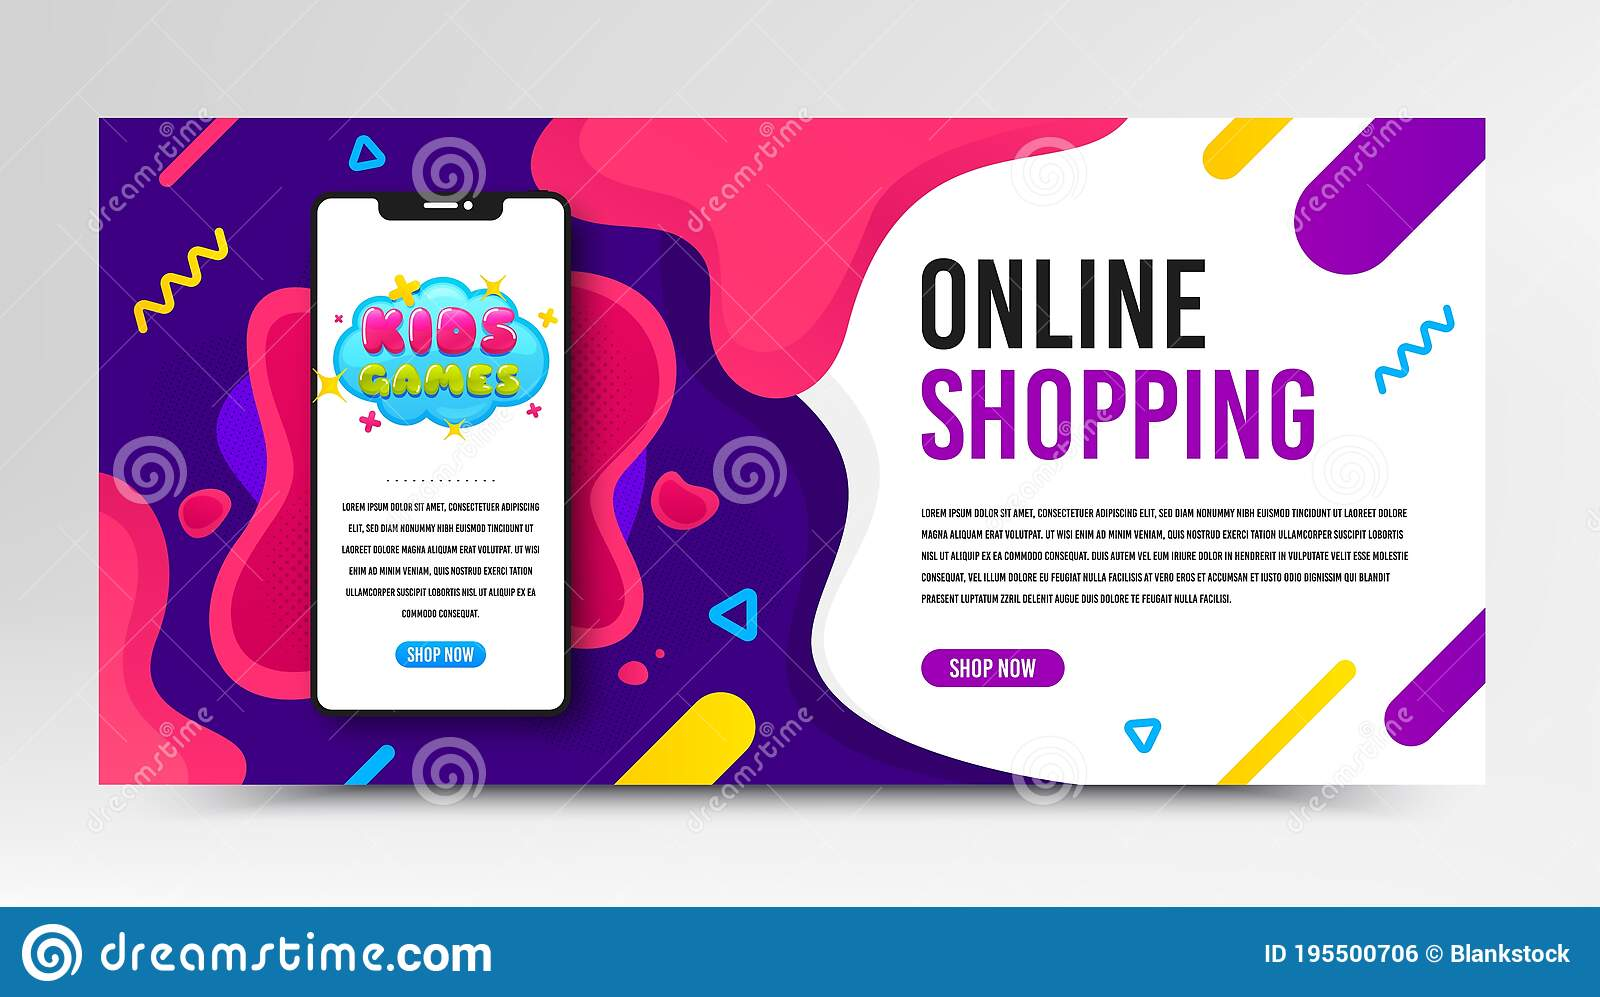 Free smart photo frame mockup psd. Kids Games Icon Fun Playing Zone Banner Vector Stock Vector Illustration Of Mockup Geometric 195500706